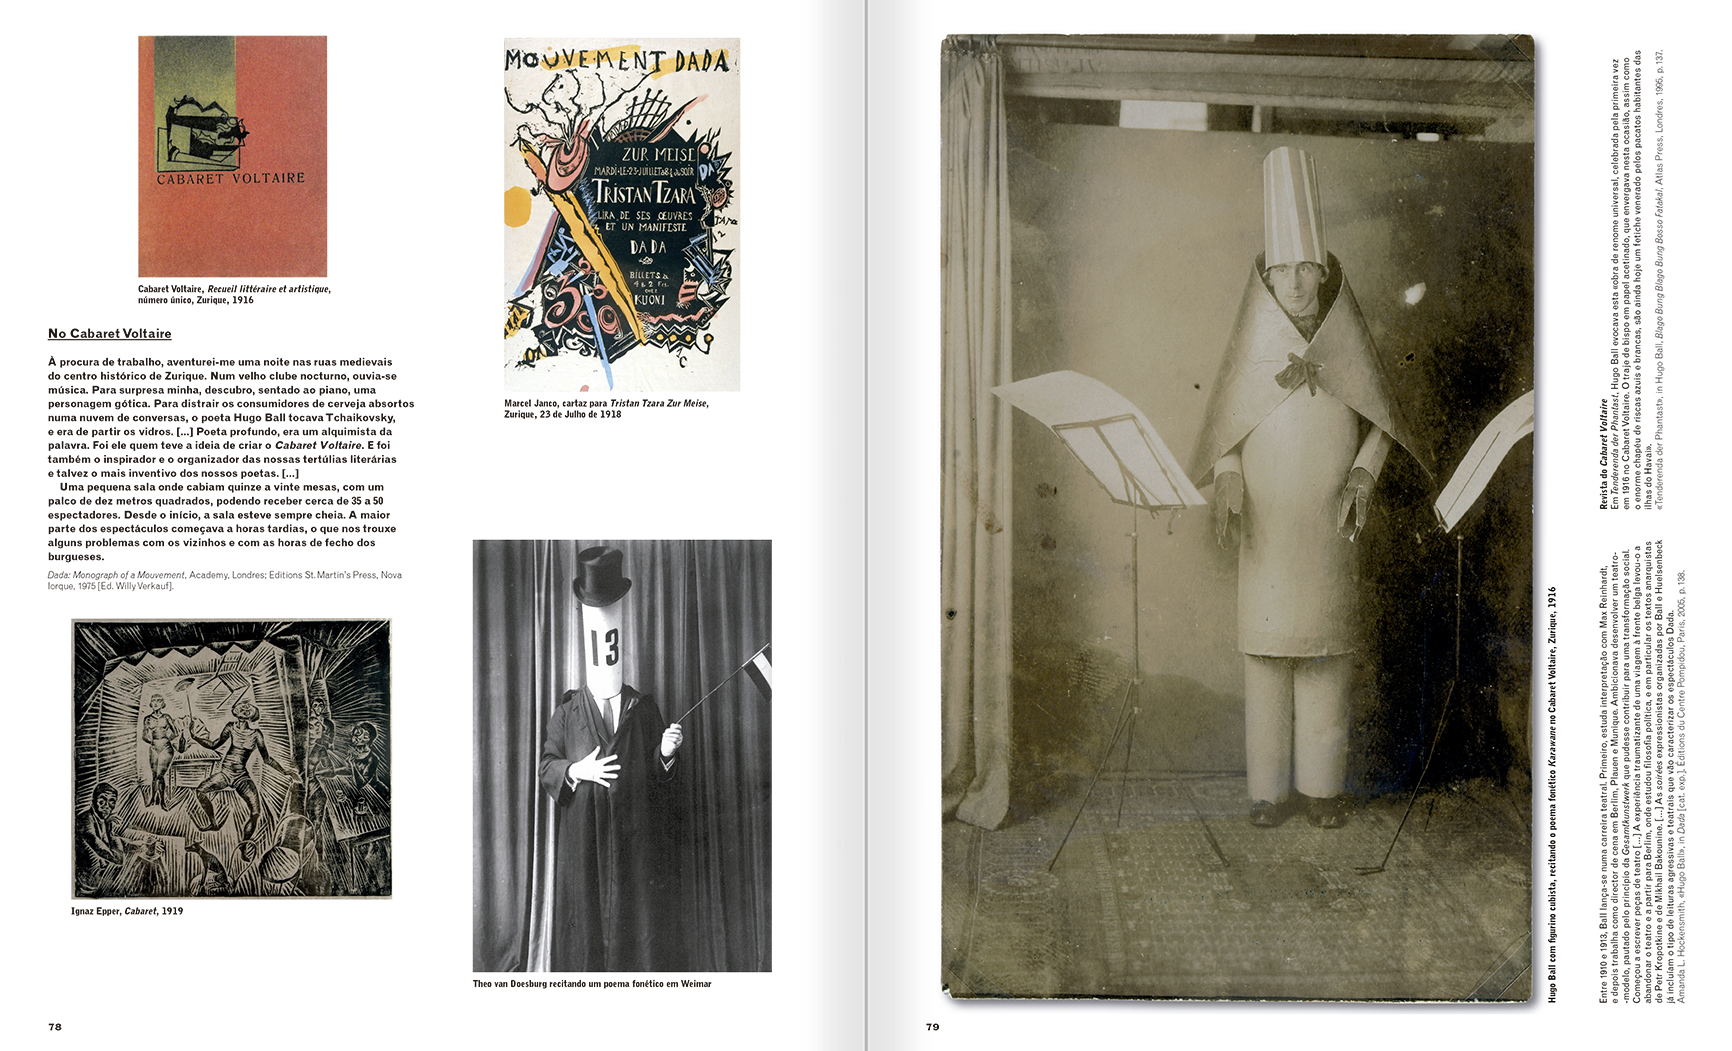 Selection from the catalogue 'A Theater without Theater', pages 78 and 79